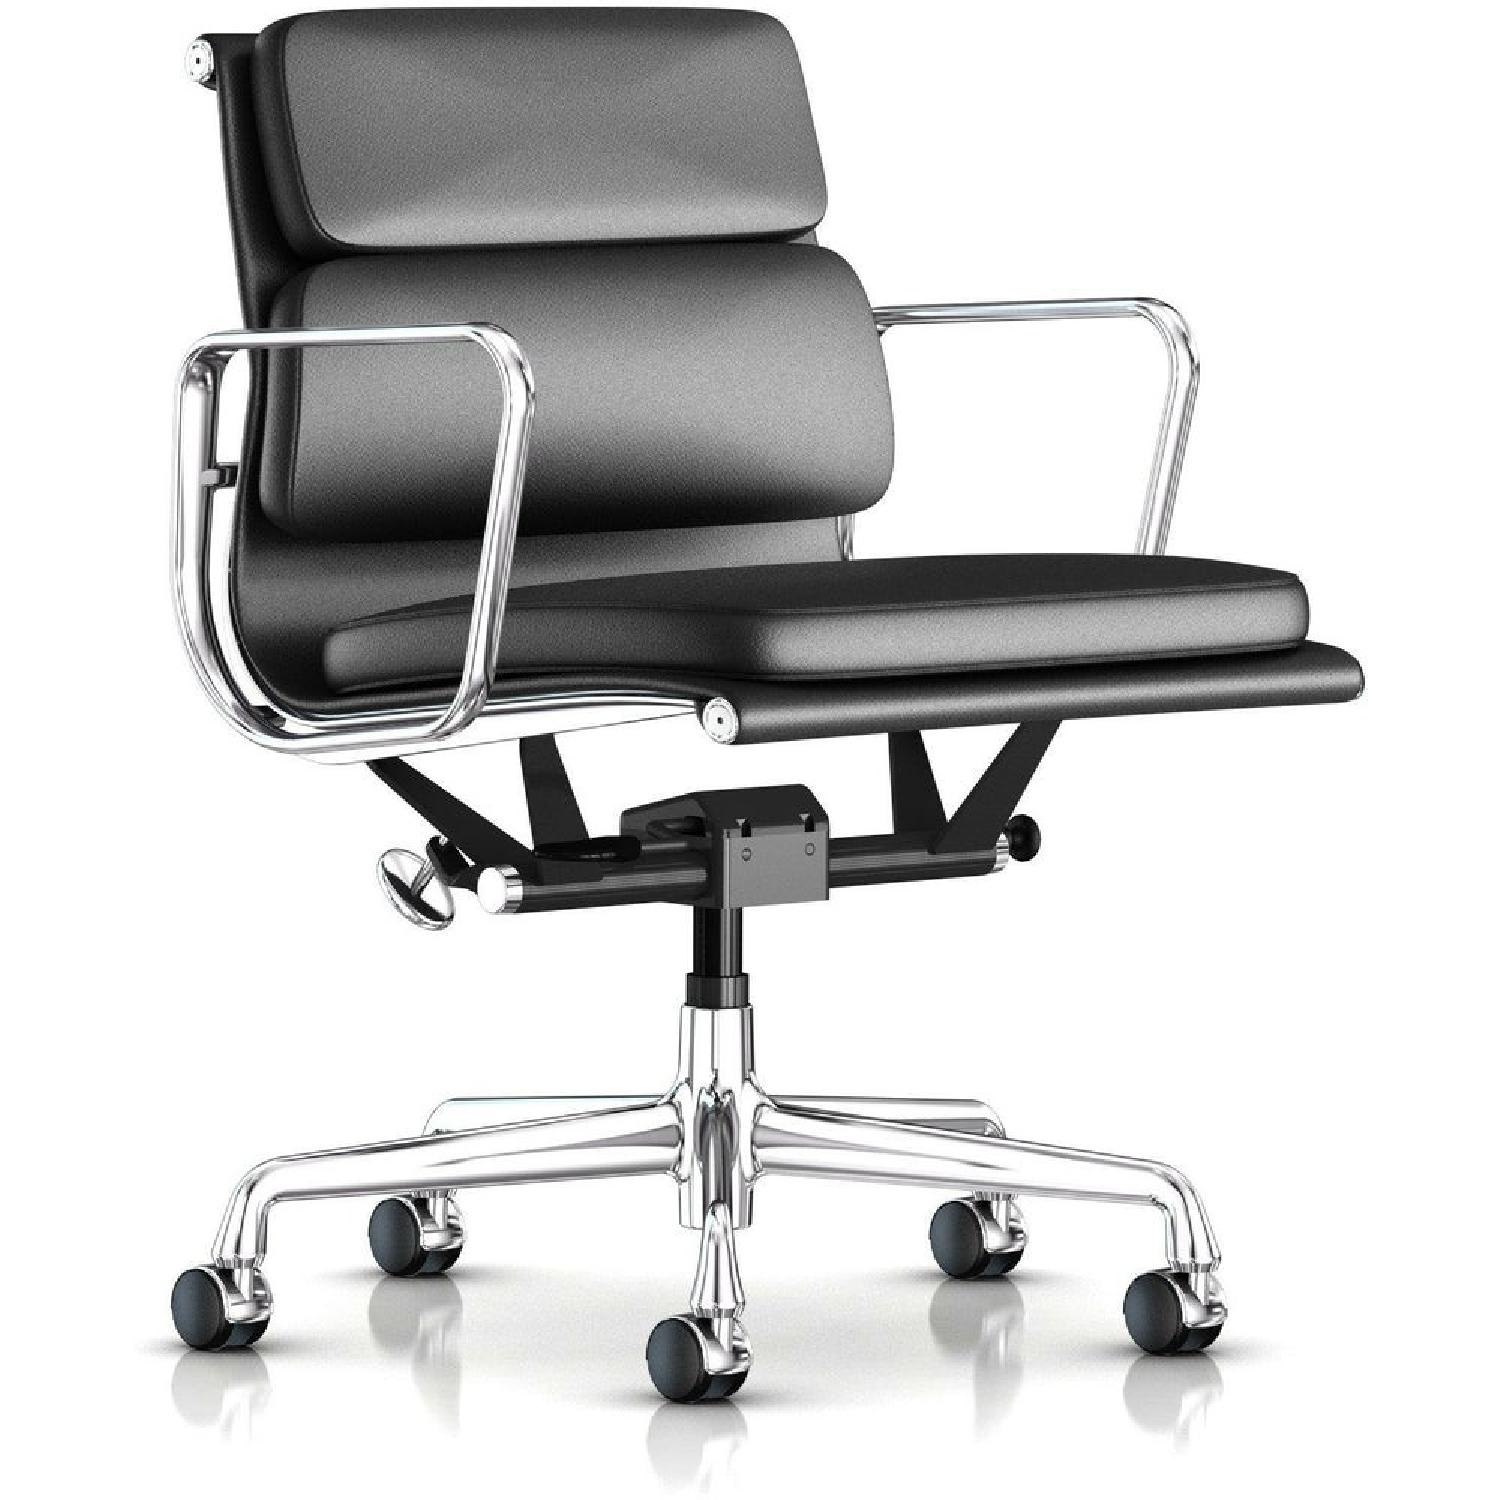 Herman Miller Eames Soft Pad Management Chair - image-10